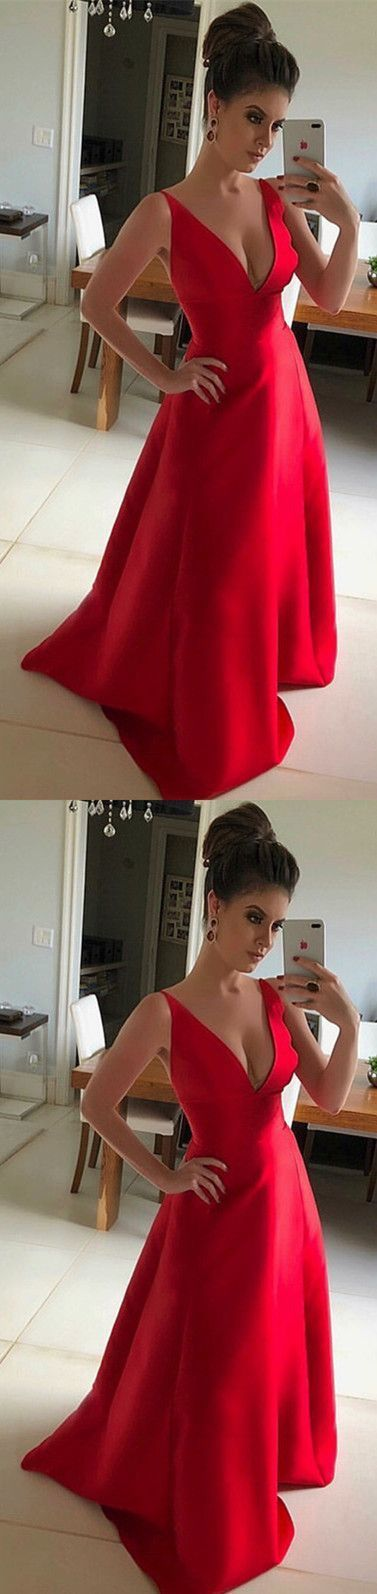 Long Red Satin V-neck Bridesmaid Dresses Floor Length Evening Gowns